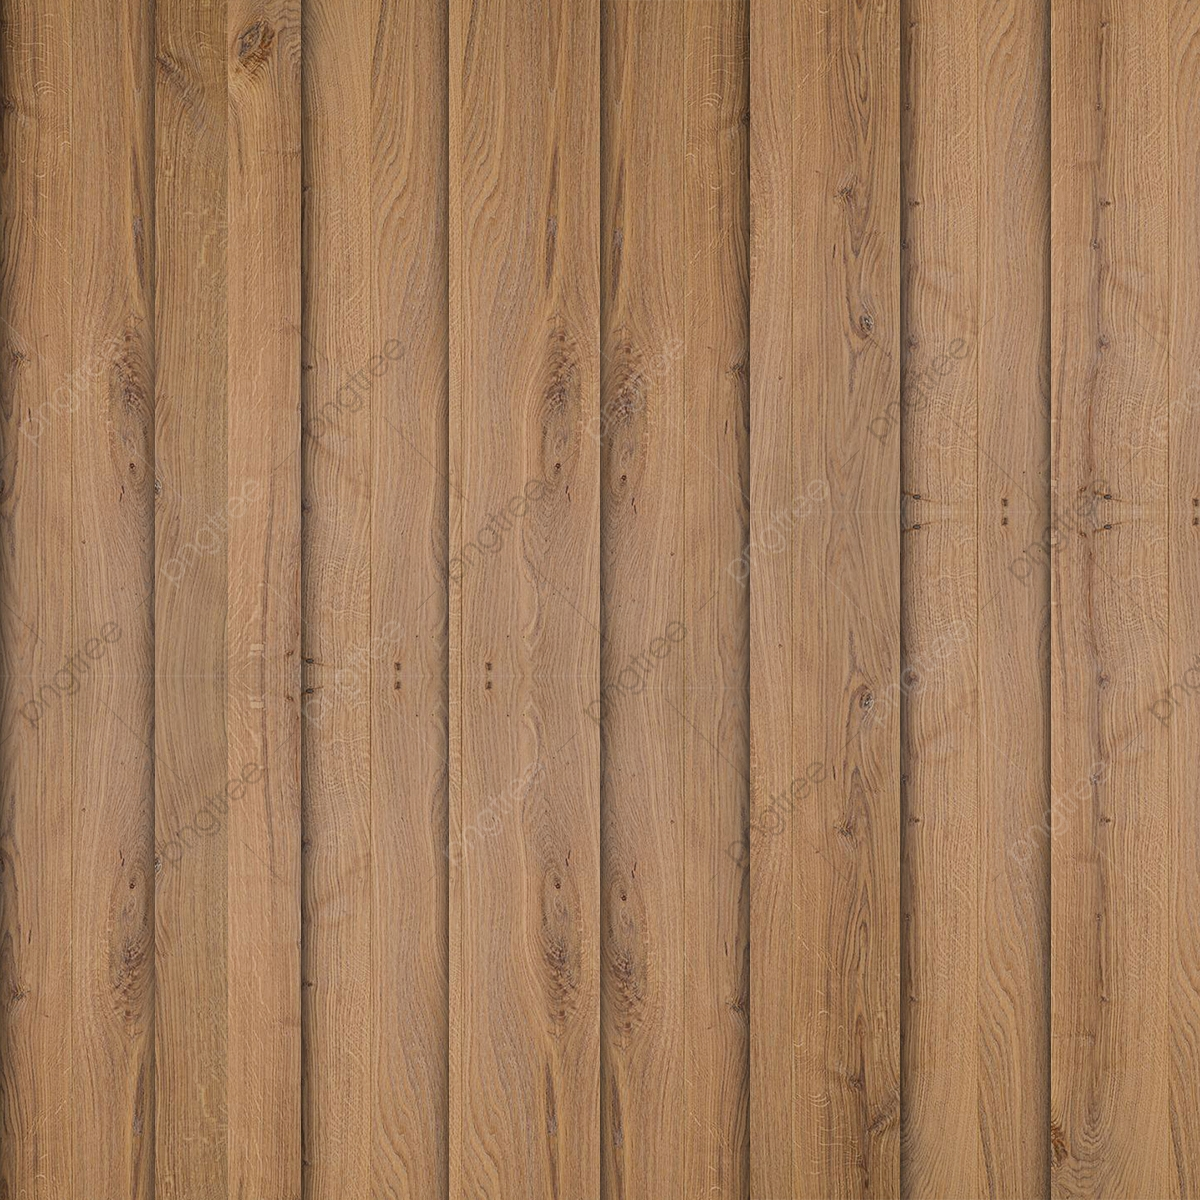 hight resolution of commercial use resource upgrade to premium plan and get license authorization upgradenow wood stripe texture